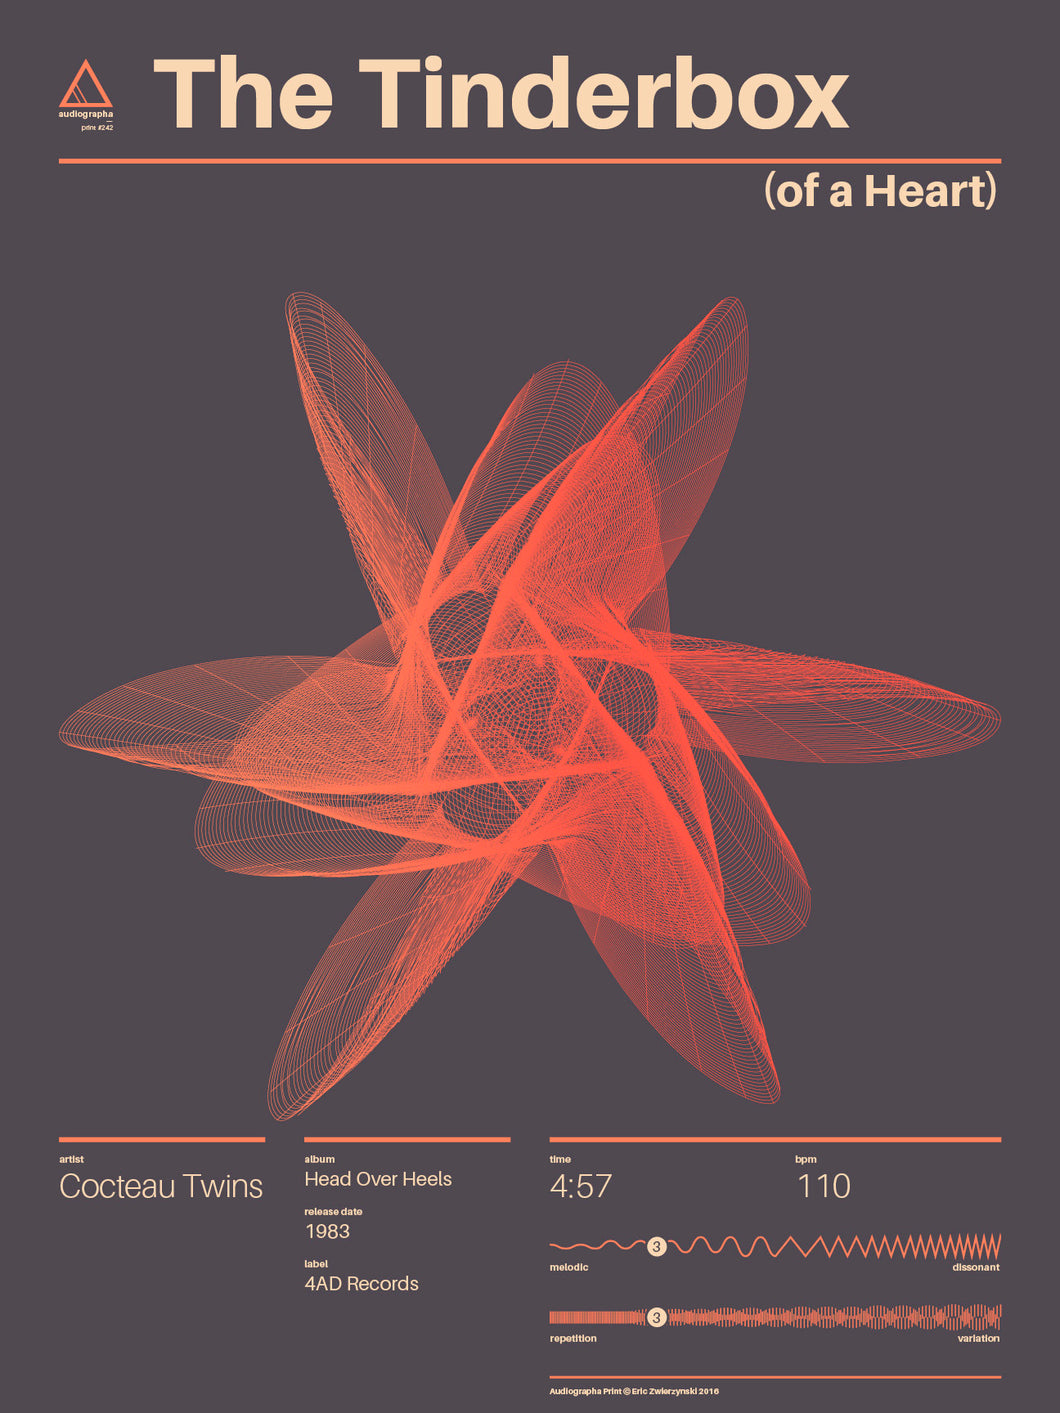 Cocteau Twins: The Tinderbox